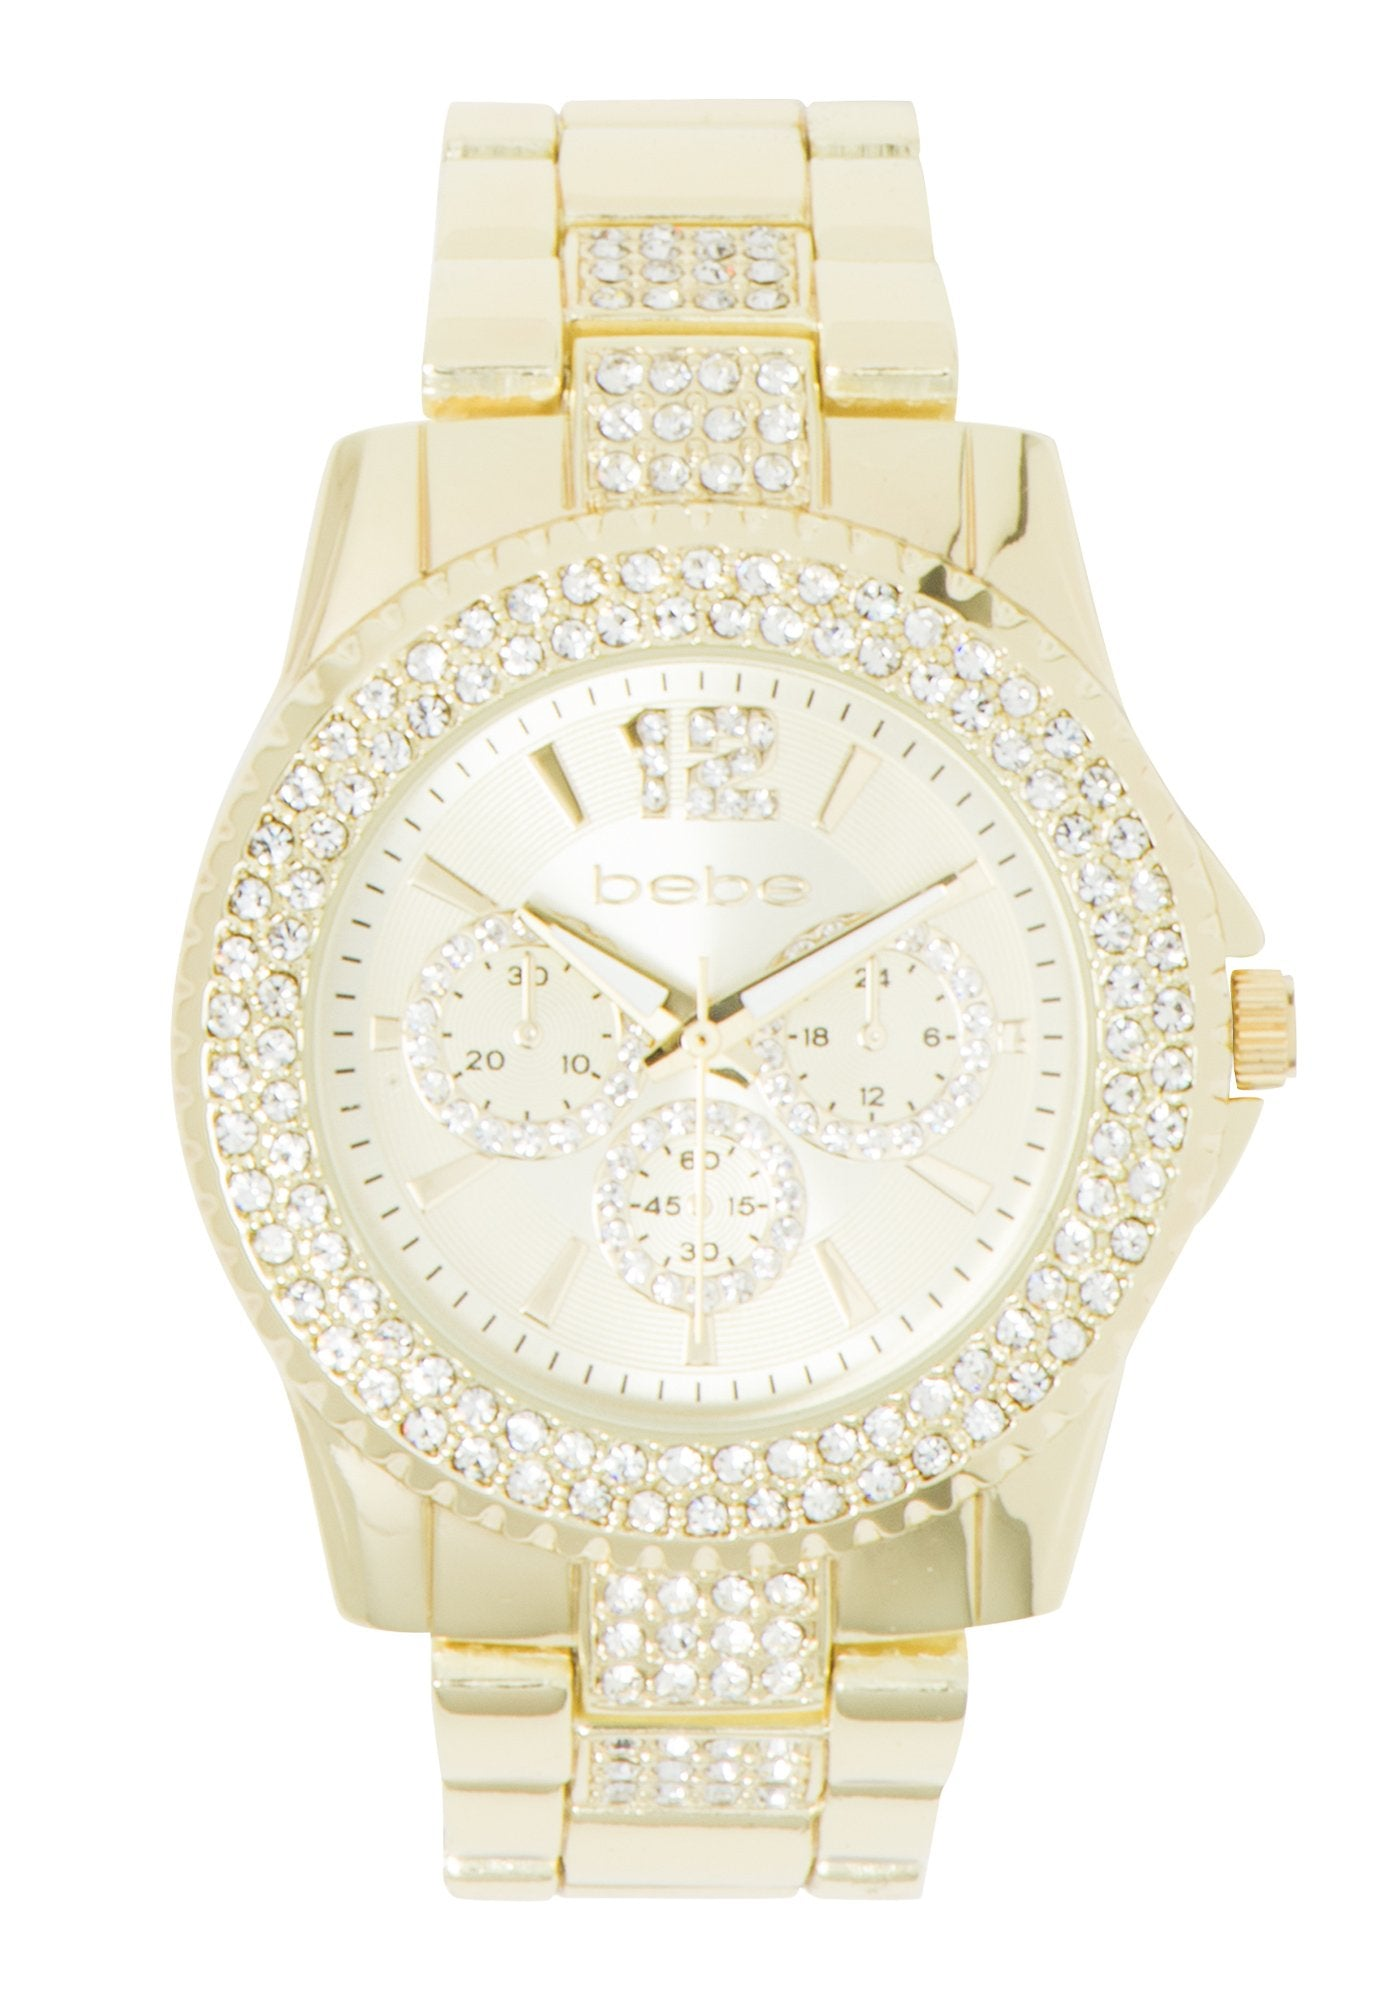 Bebe Women's Two Tone Rhinestone Pave Watch in GOLD Metal